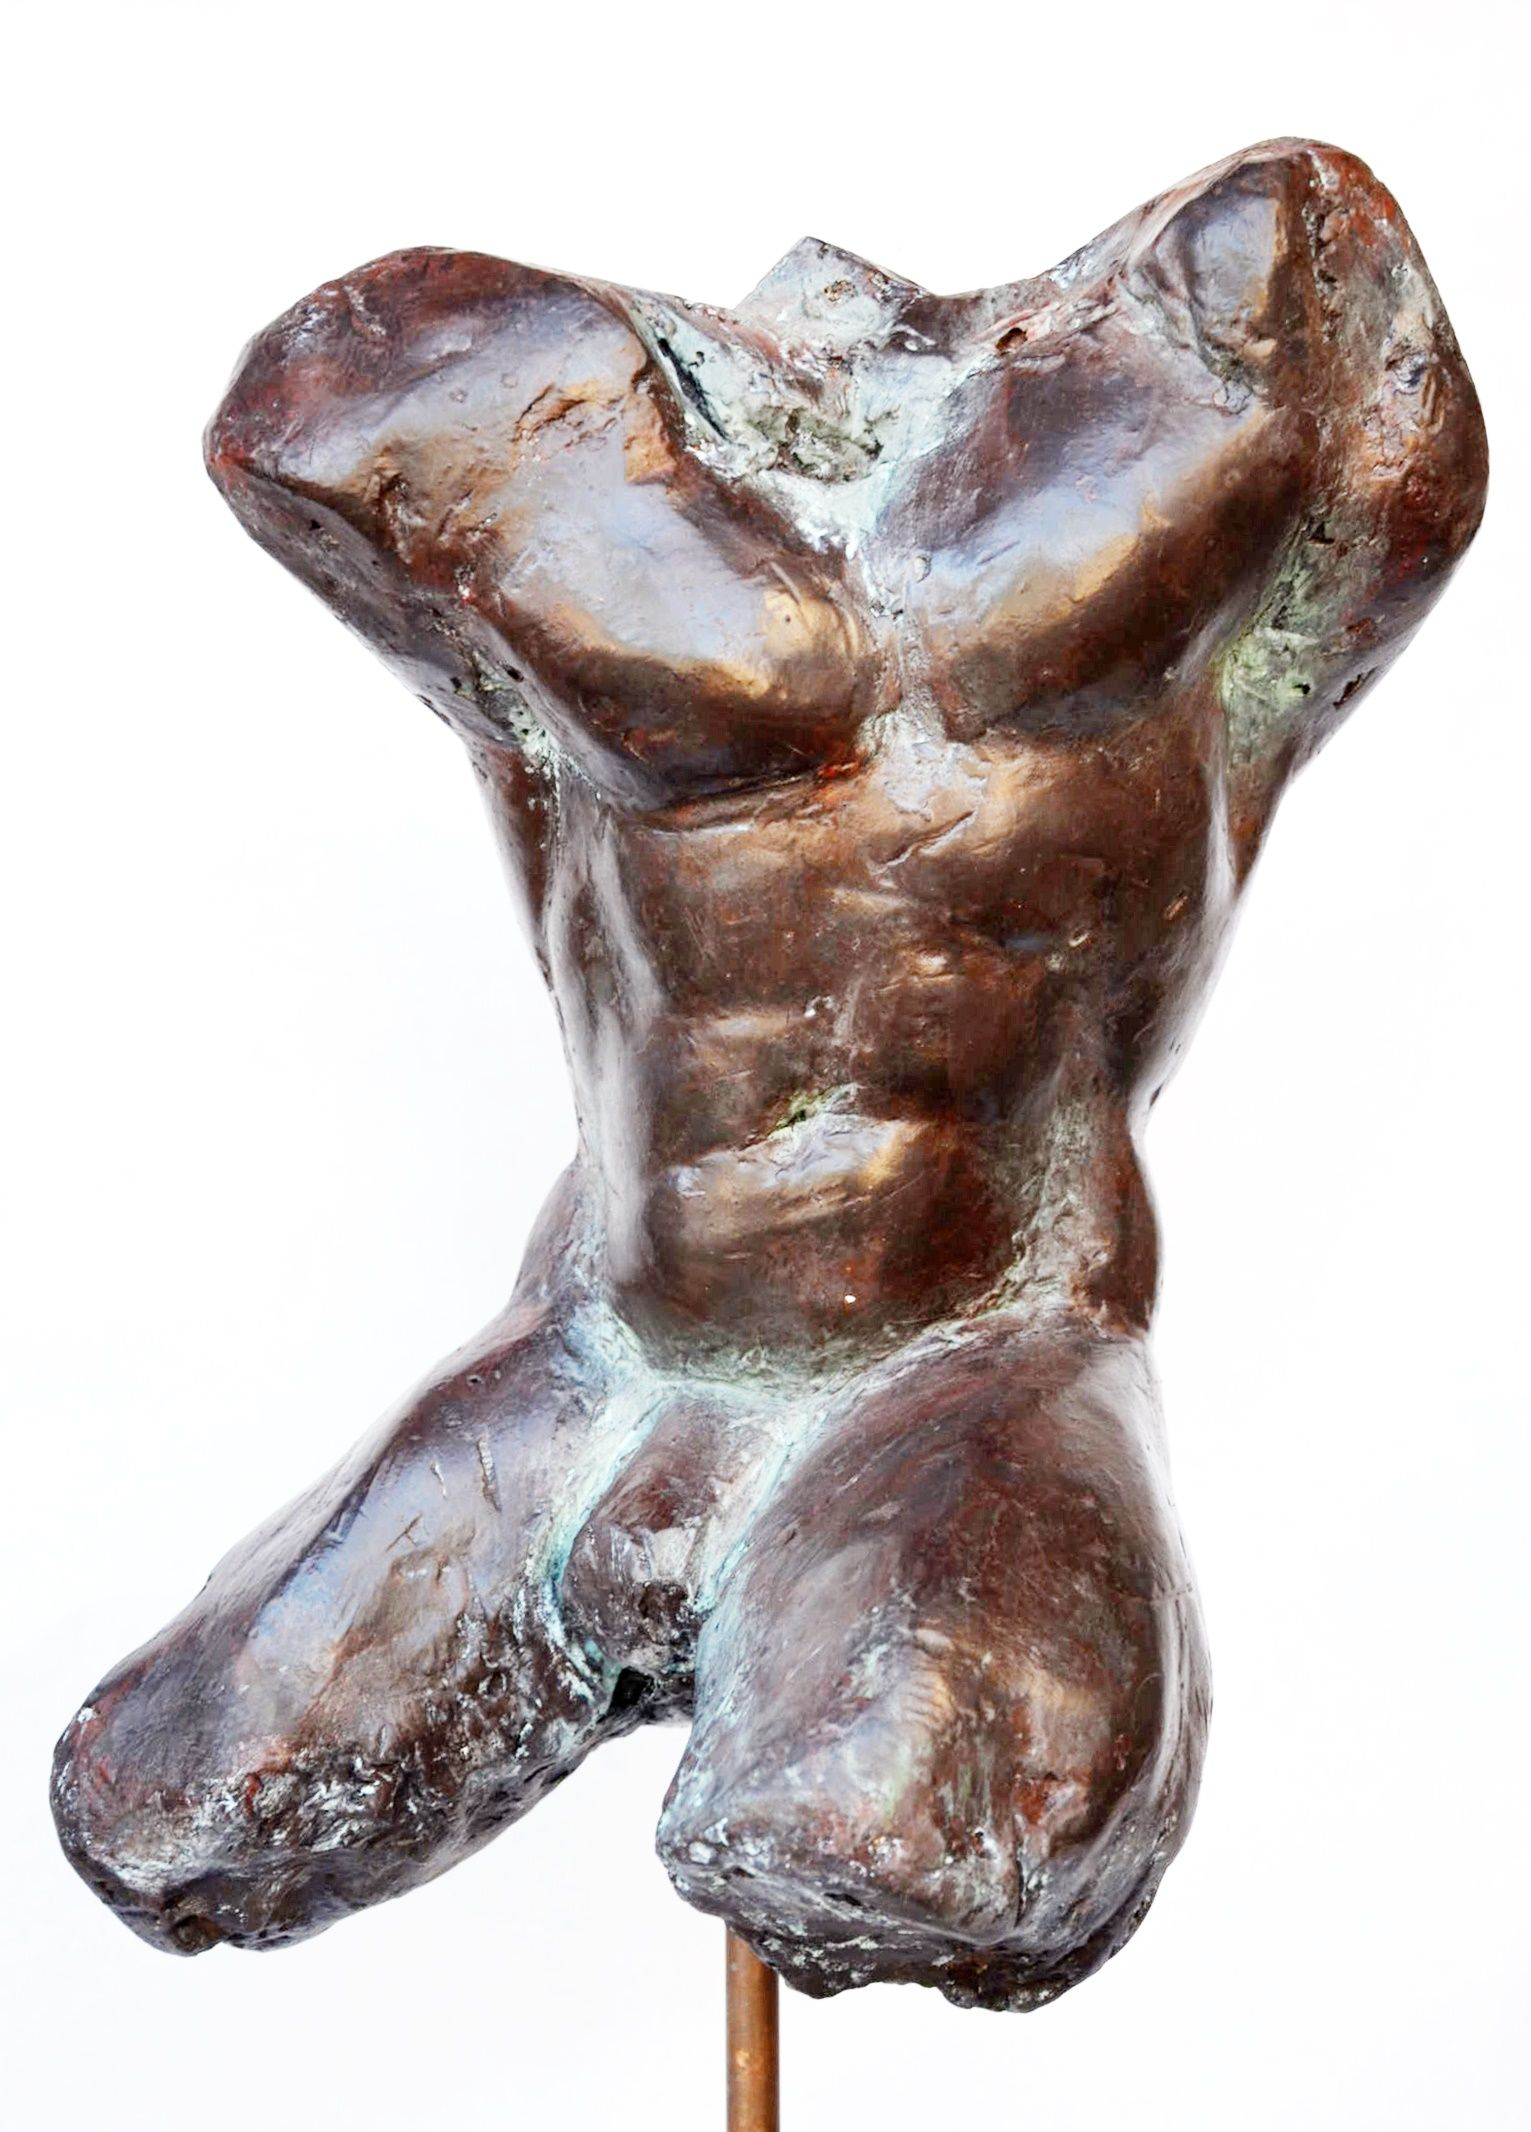 Impressionist man torso III,Yann Guillon,Sculpture, detail 4